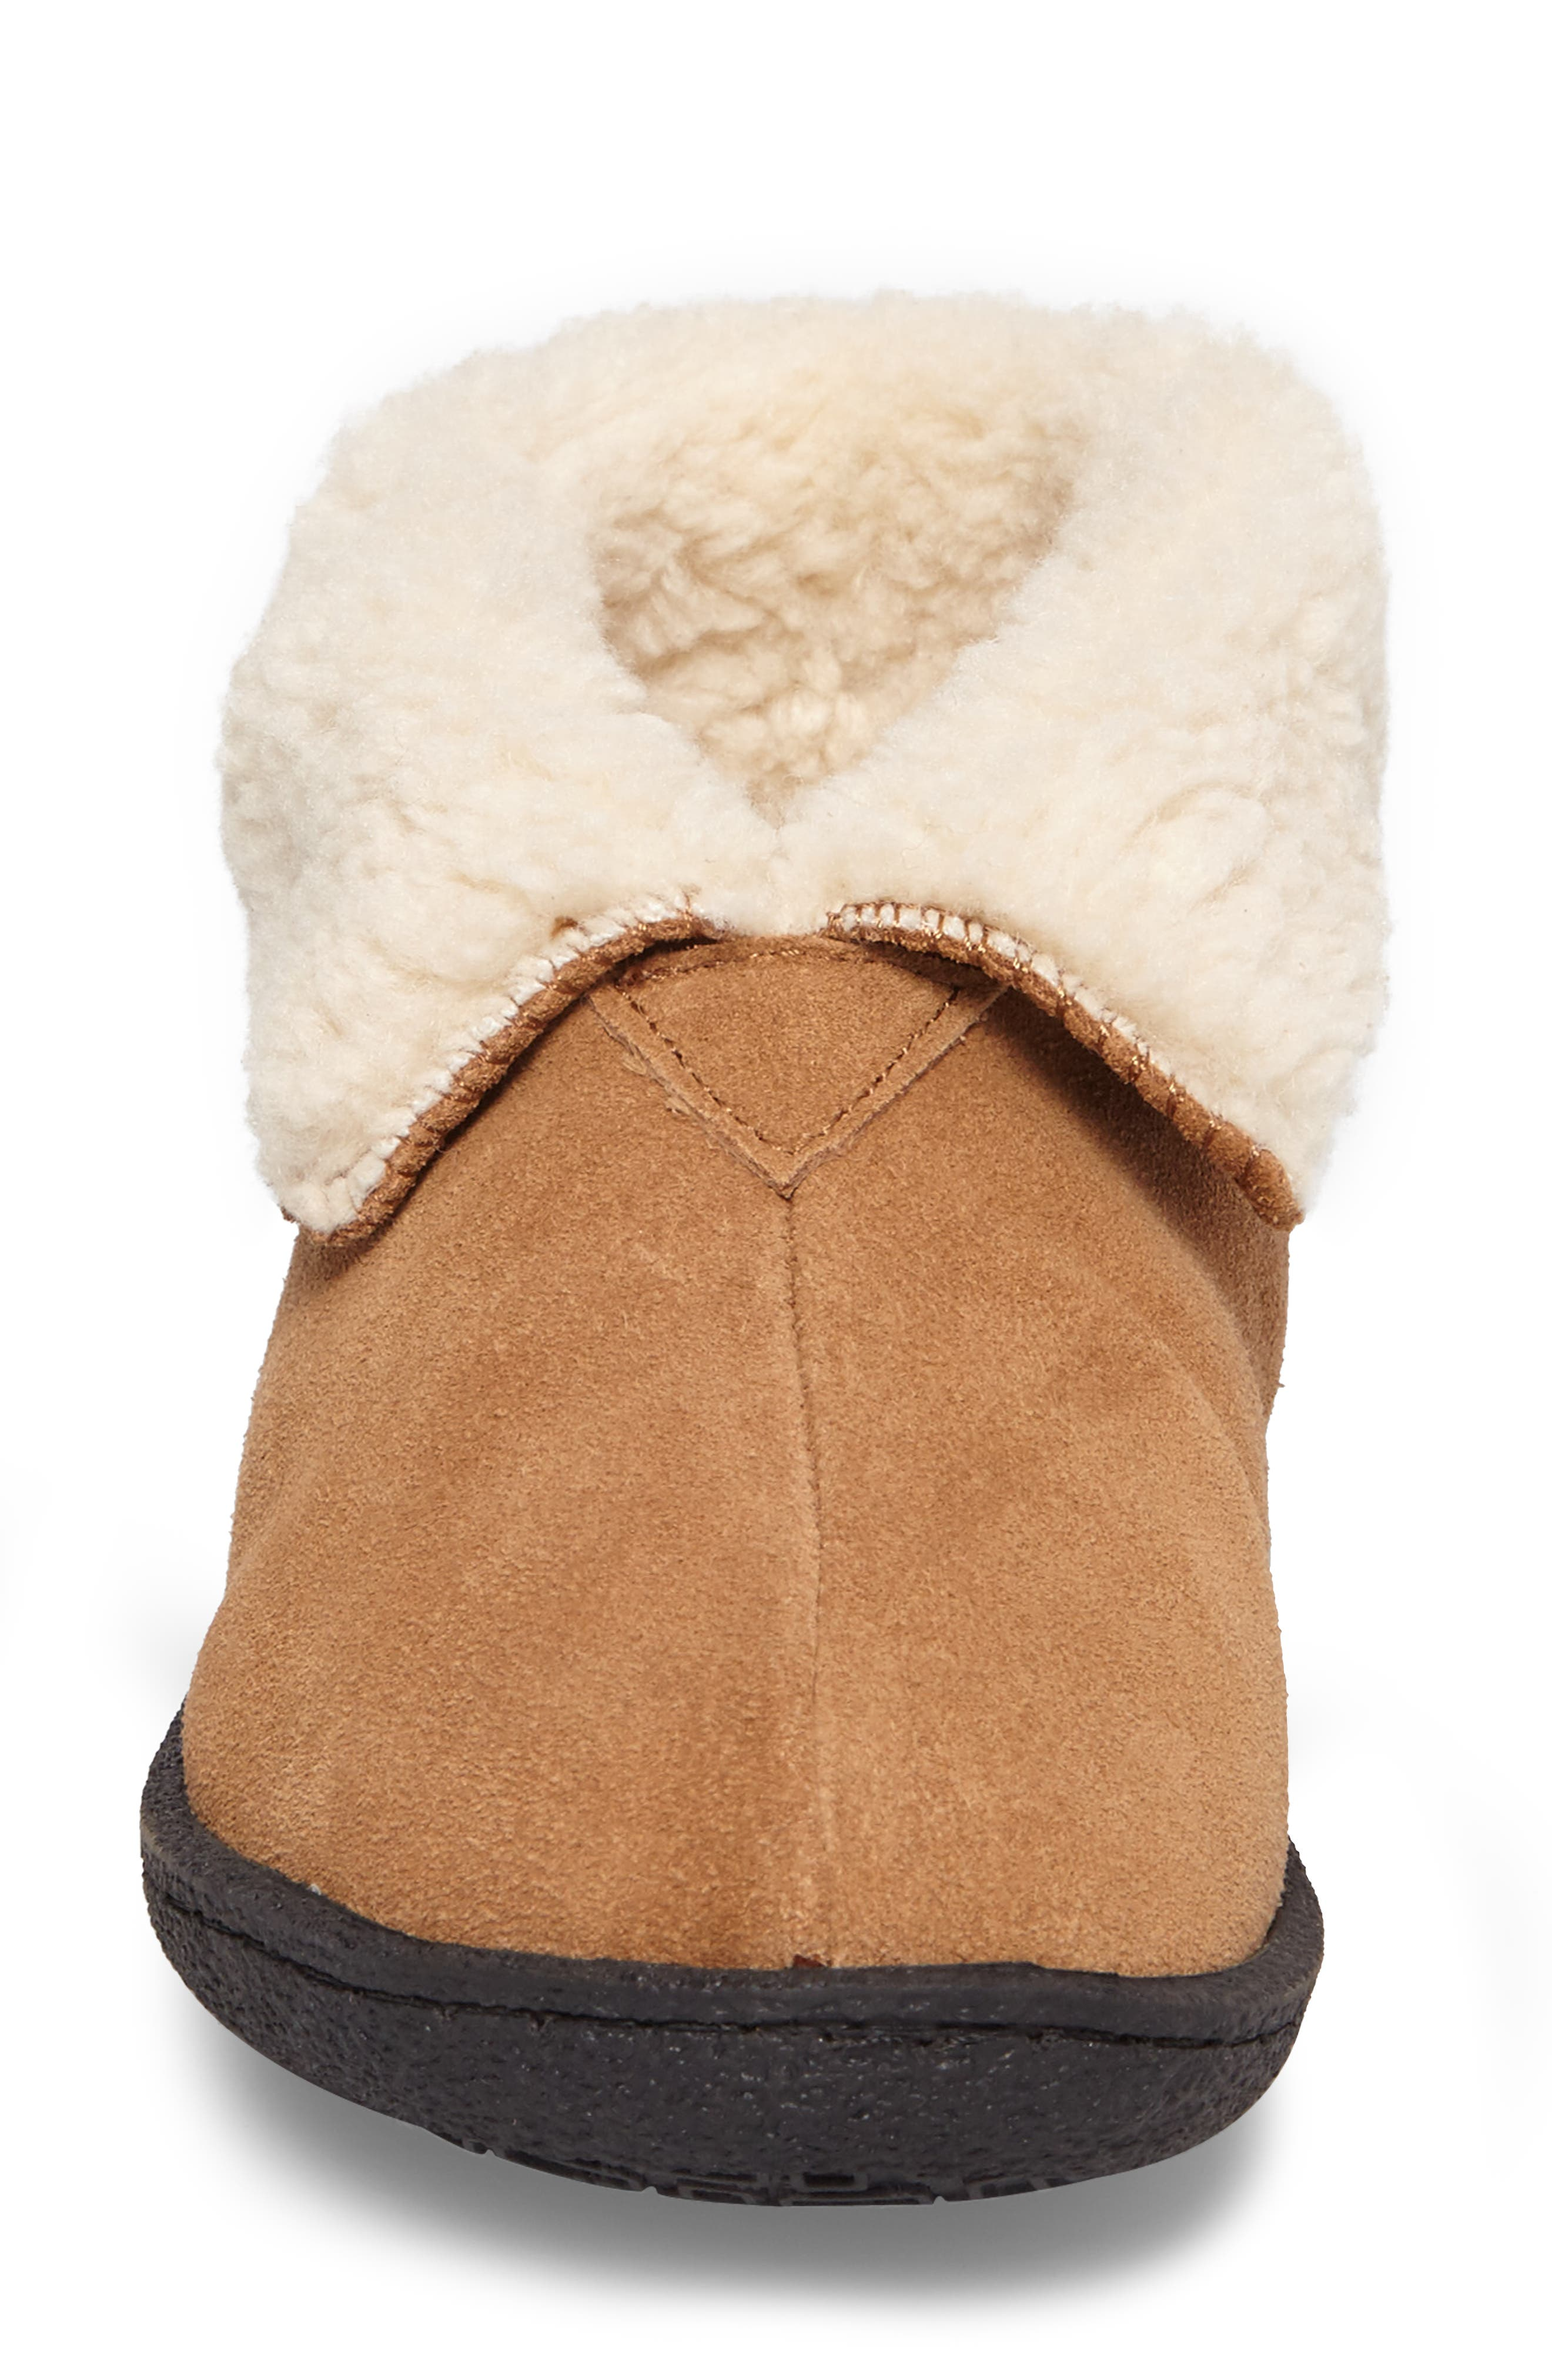 Lodge II Slipper,                             Alternate thumbnail 4, color,                             Chestnut